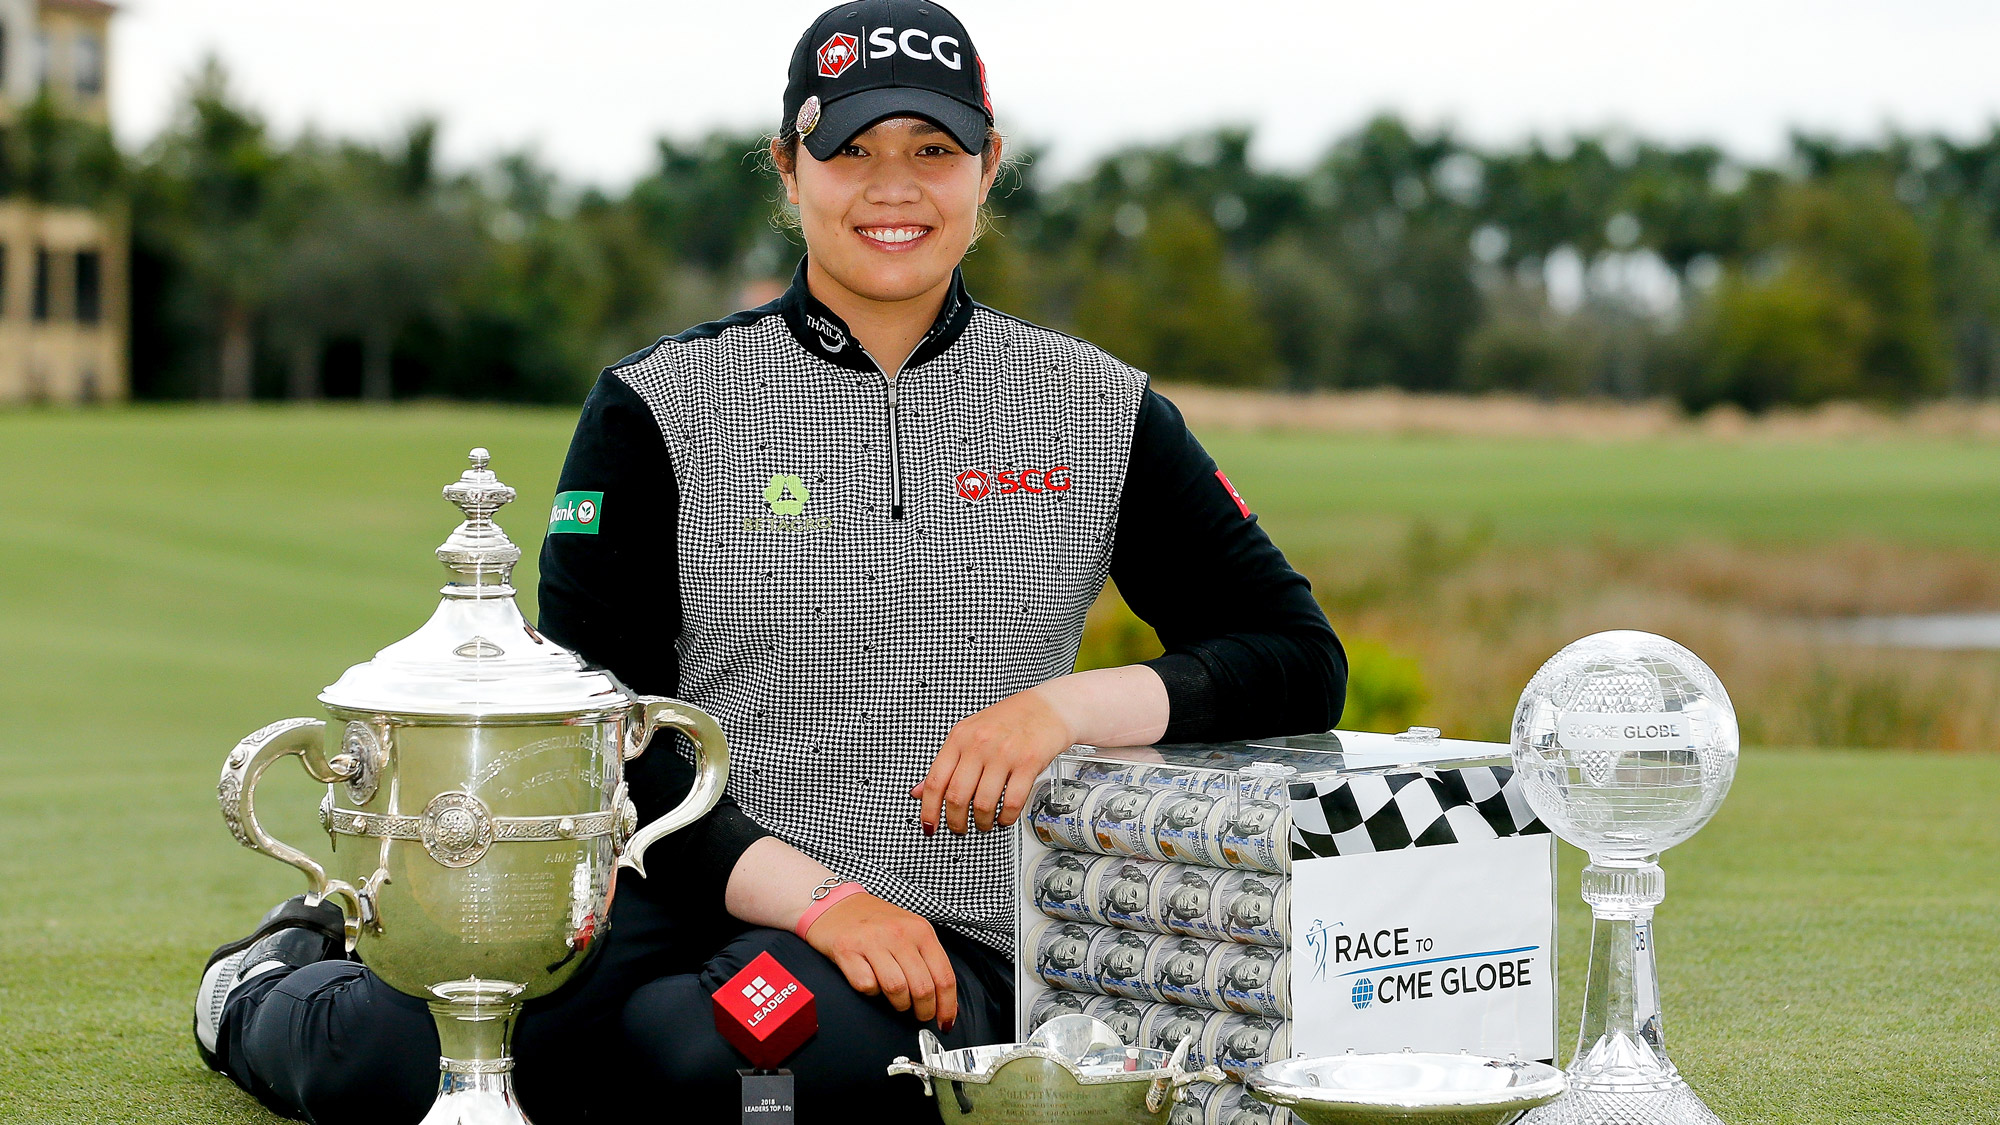 Ariya Jutanugarn of Thailand poses for a photo with (left to right) the Rolex Player of the Year trophy, Leaders Top 10 Competition Trophy, Vare trophy, Rolex Annika Major award and the Race to the CME Globe trophy after the final round of the LPGA CME Group Tour Championship